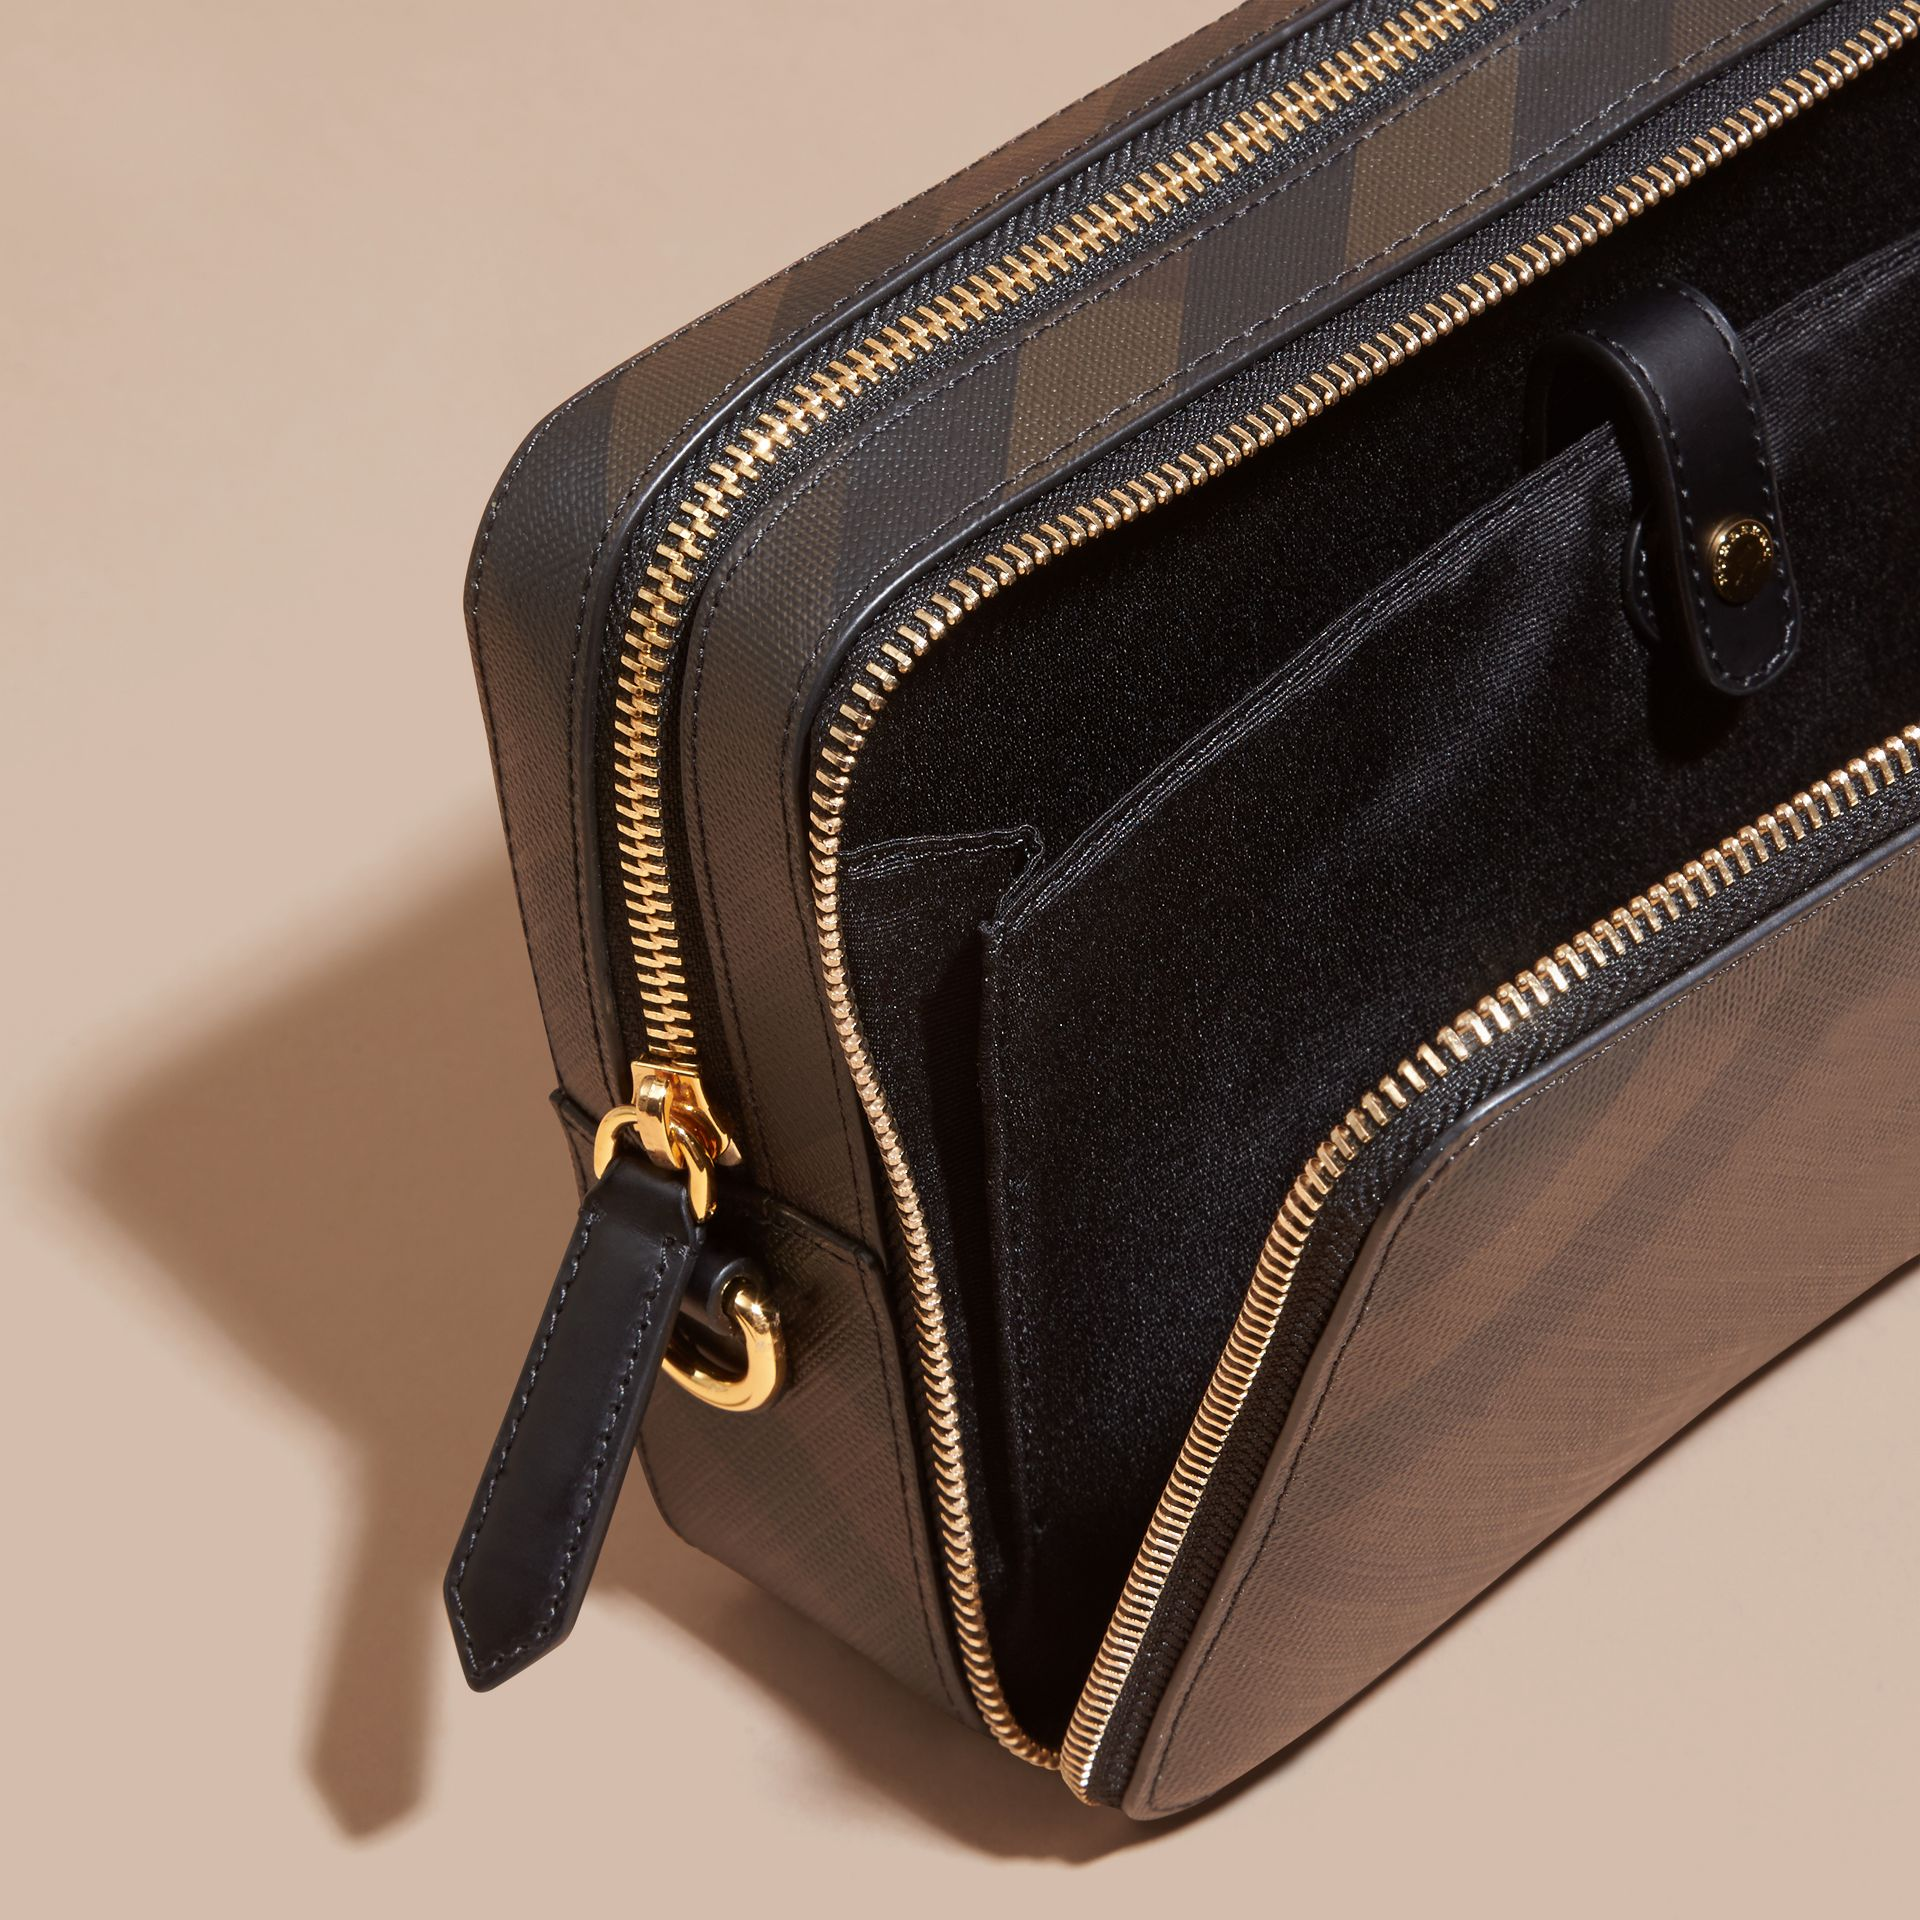 Leather-trimmed London Check Pouch in Chocolate/black - Men | Burberry Canada - gallery image 4